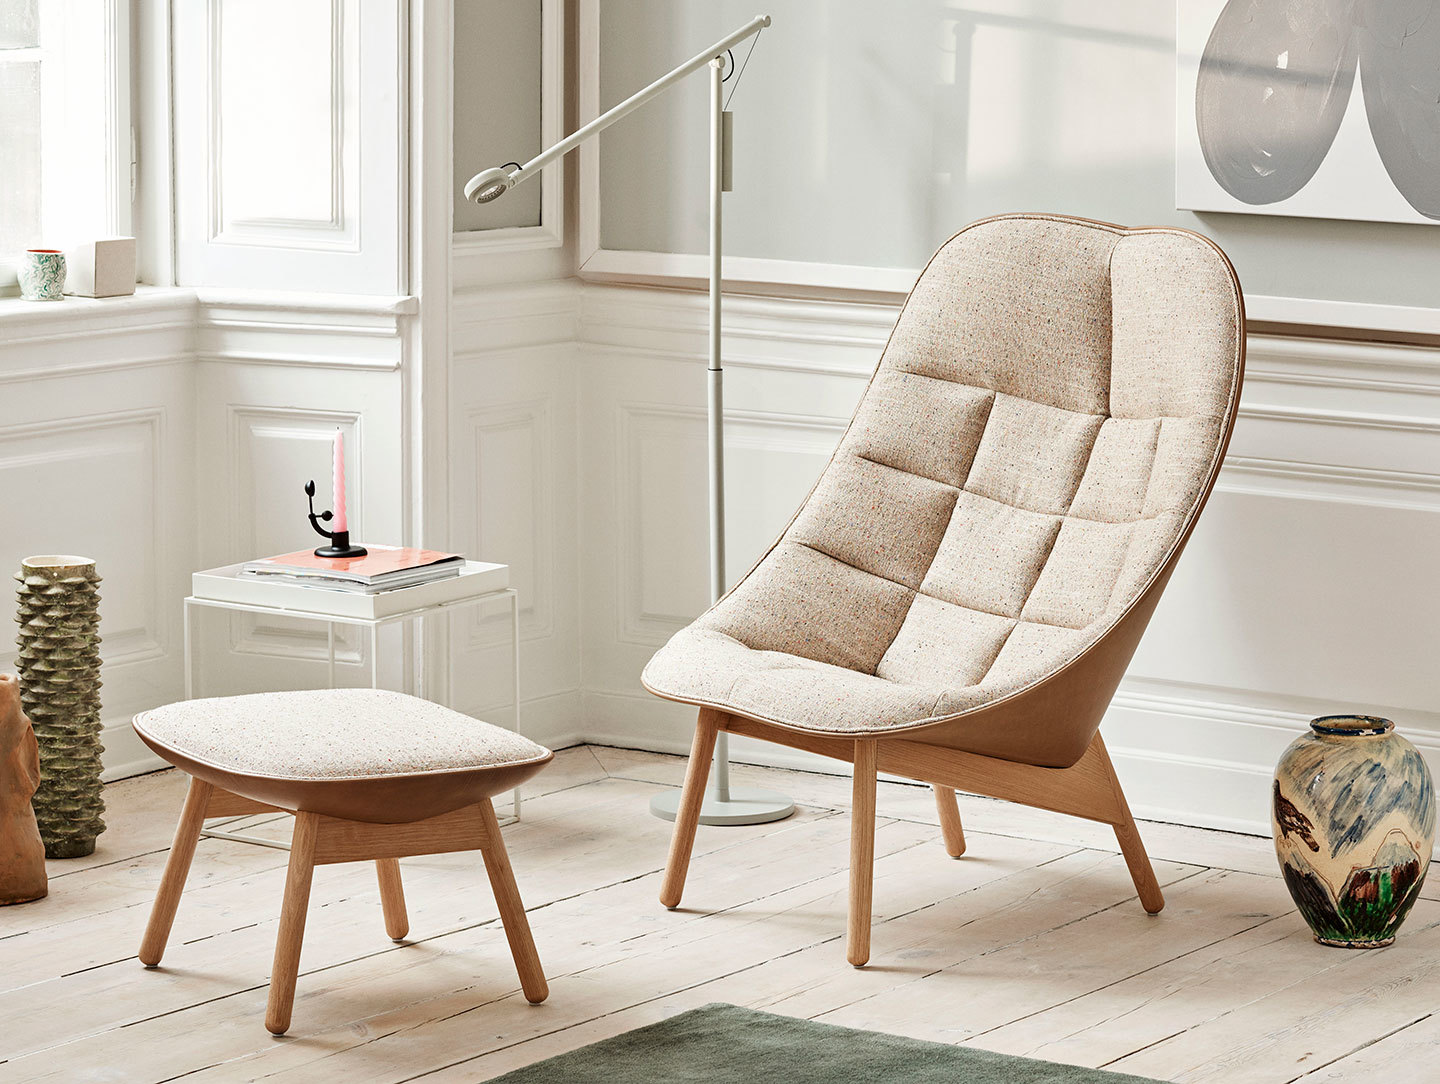 20 Reading Chairs That Will Help You Get Lost In Your Favourite Book reading chairs 20 Reading Chairs That Will Help You Get Lost In Your Favourite Book 20 Reading Chairs That Will Help You Get Lost In Your Favourite Book 18